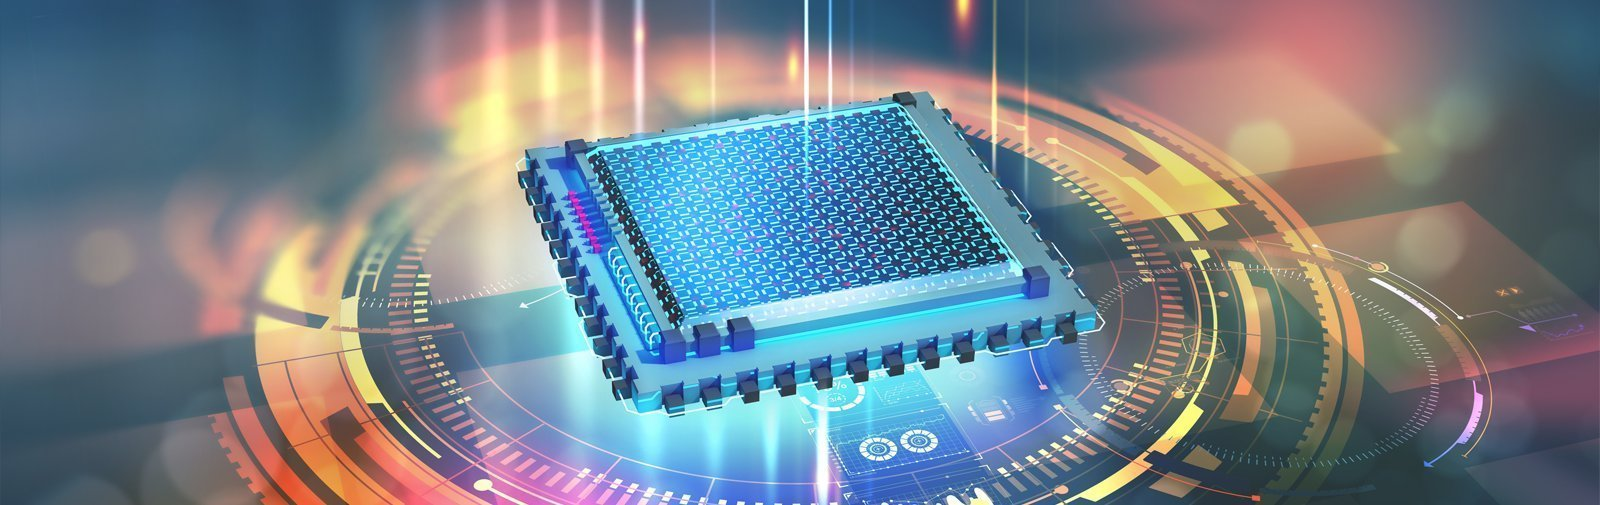 What is Processor Speed and Why Does It Matter?